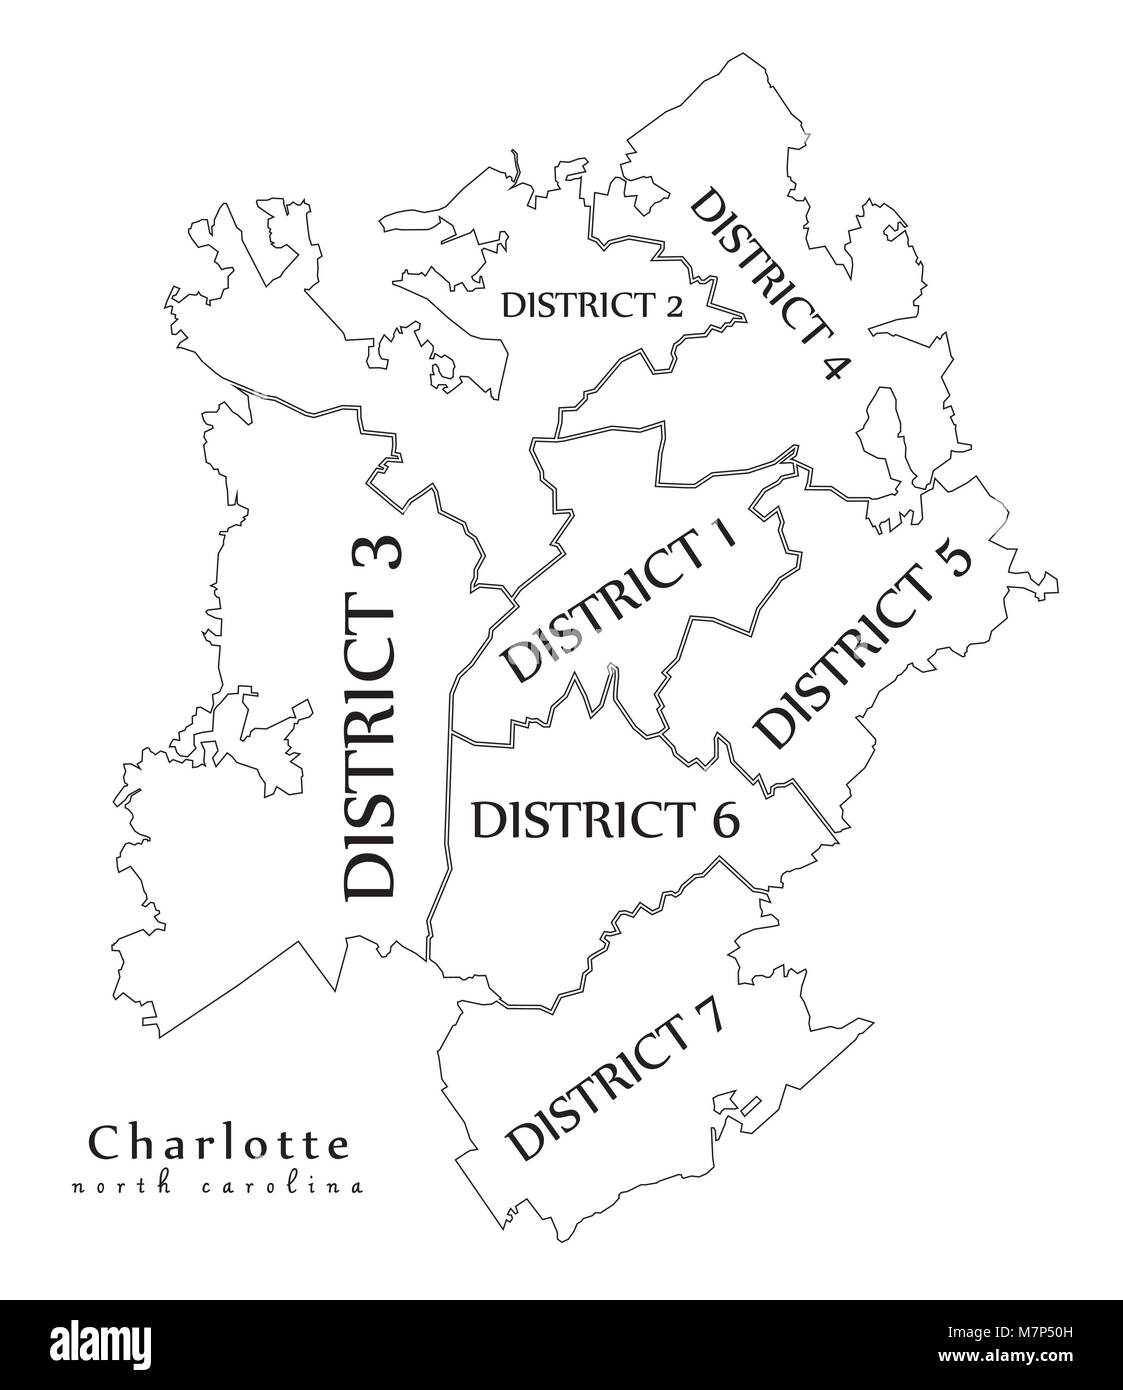 Charlotte Nc Map Usa.Modern City Map Charlotte North Carolina City Of The Usa With